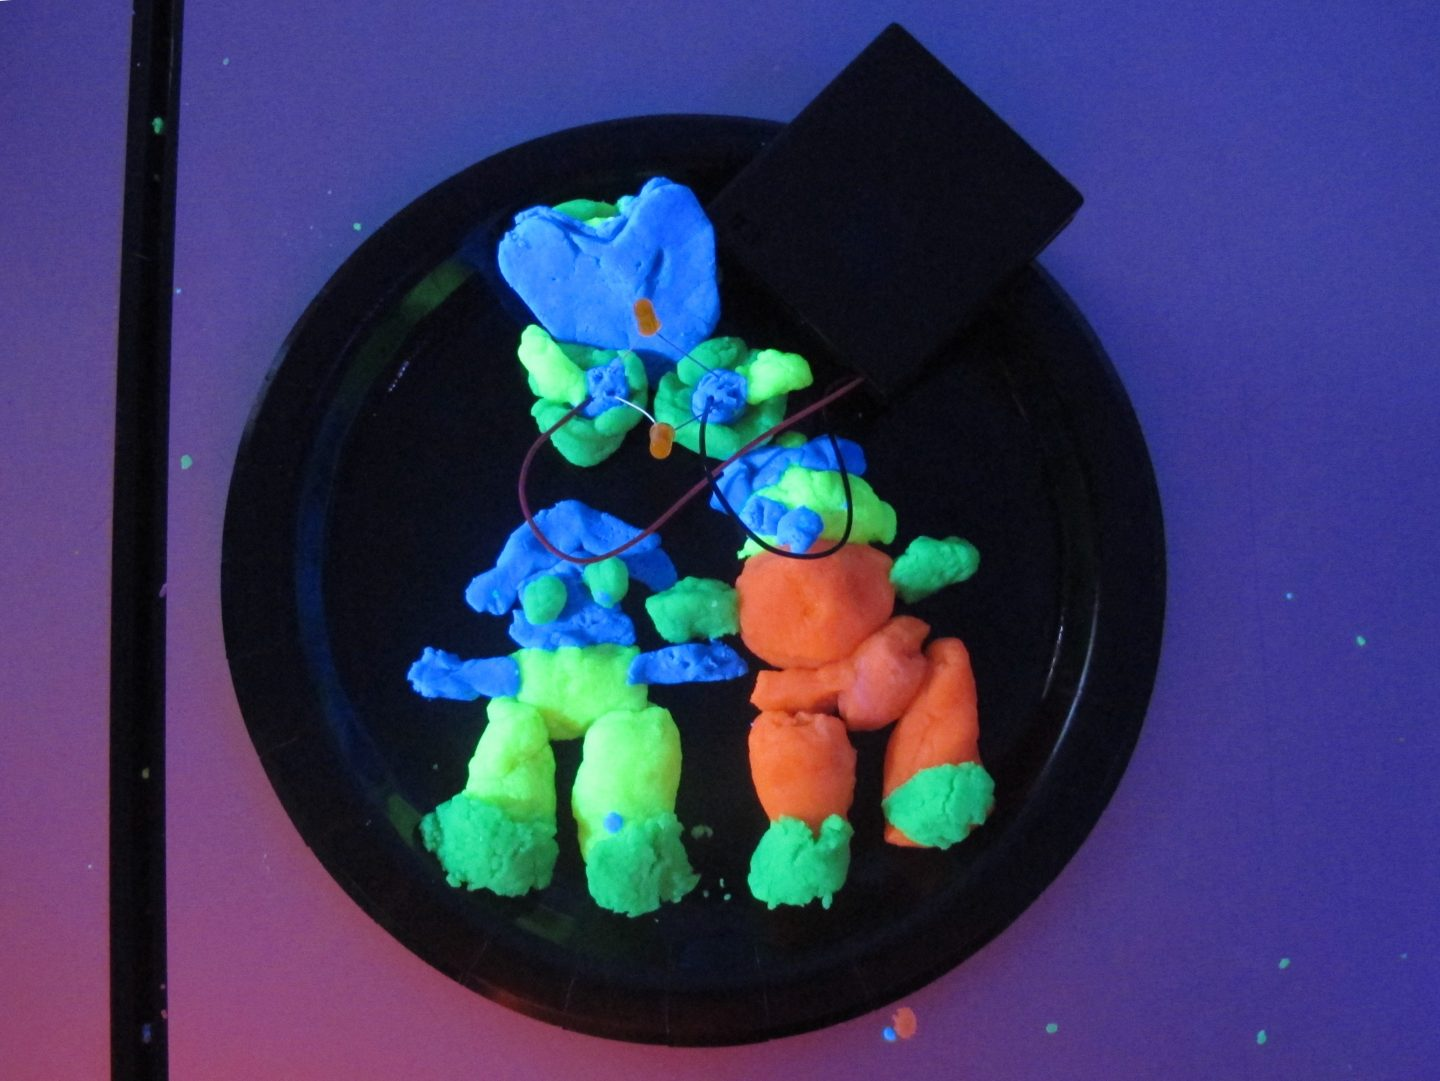 Squishy circuits workshop with LED lights